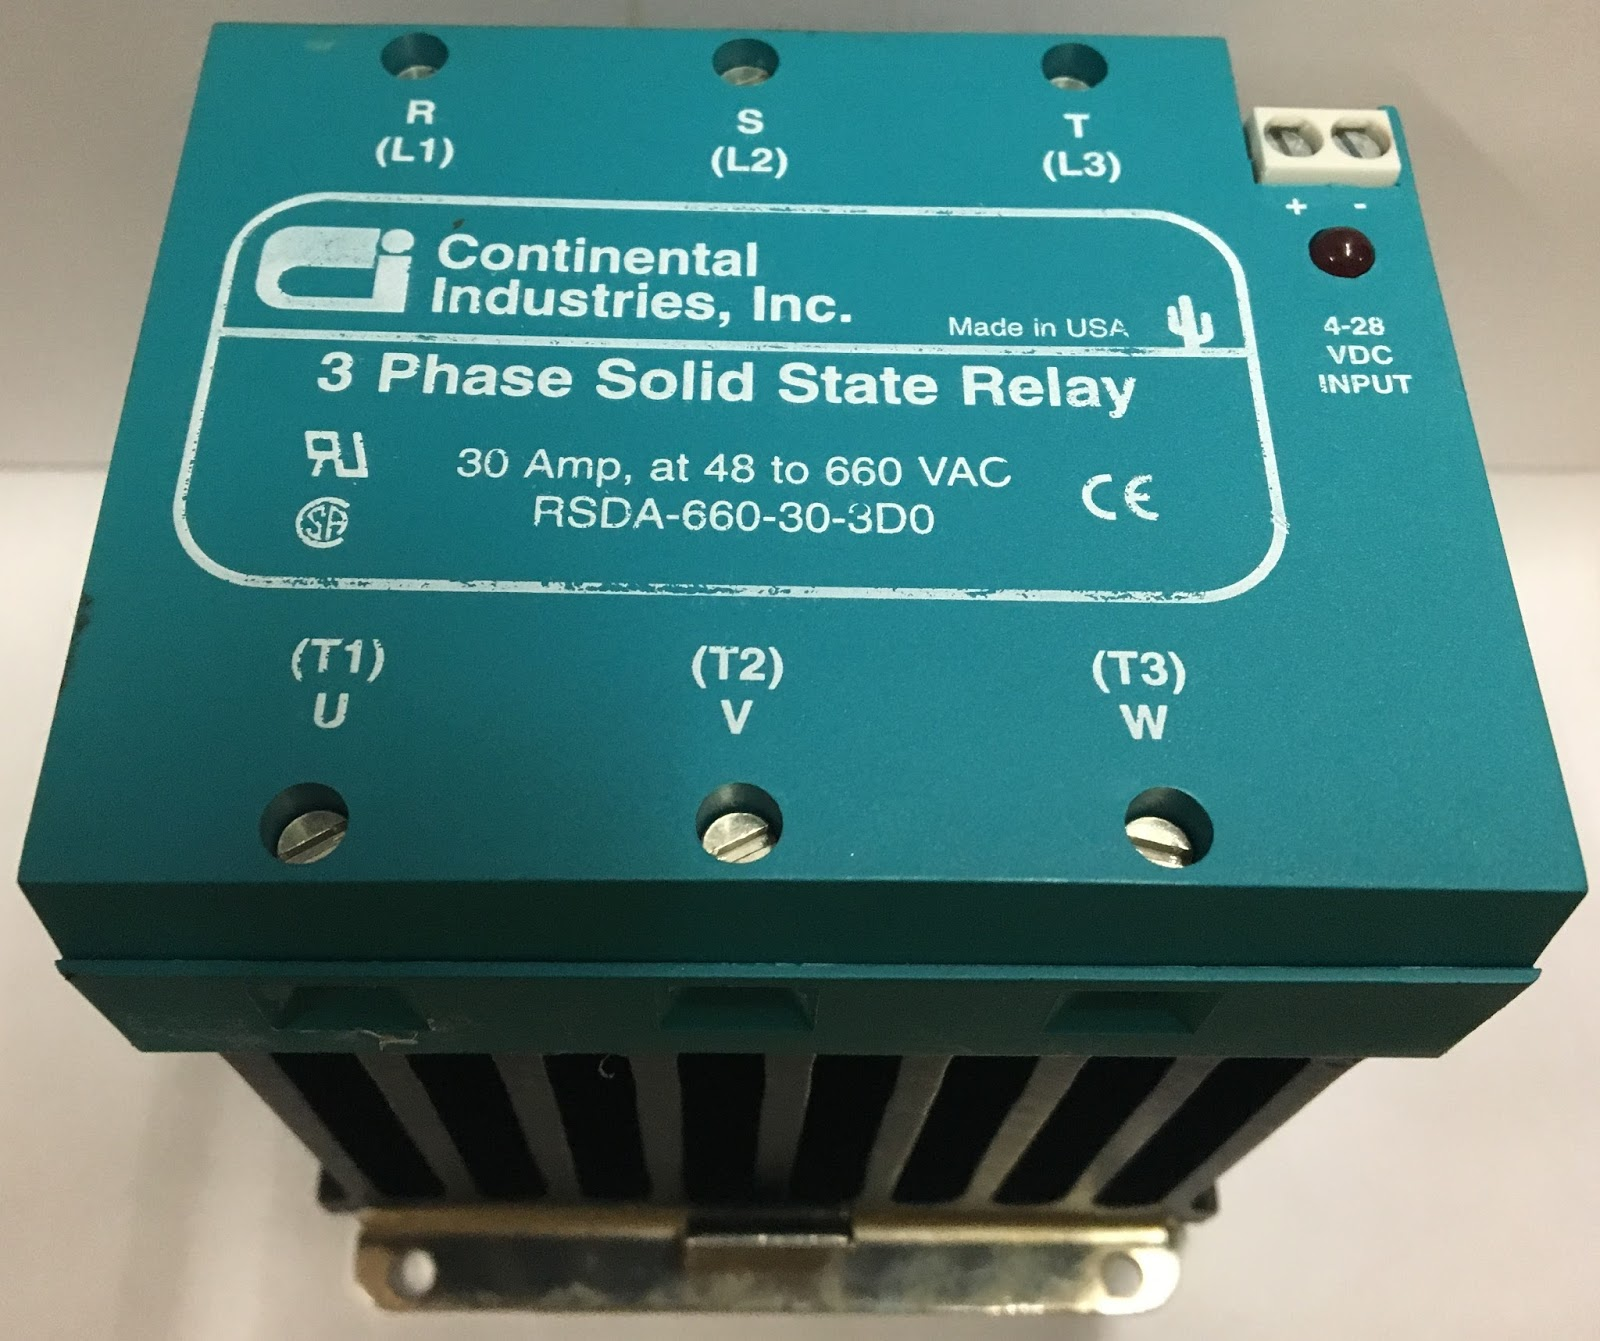 Industrial Electric Switches - Electric relay invented